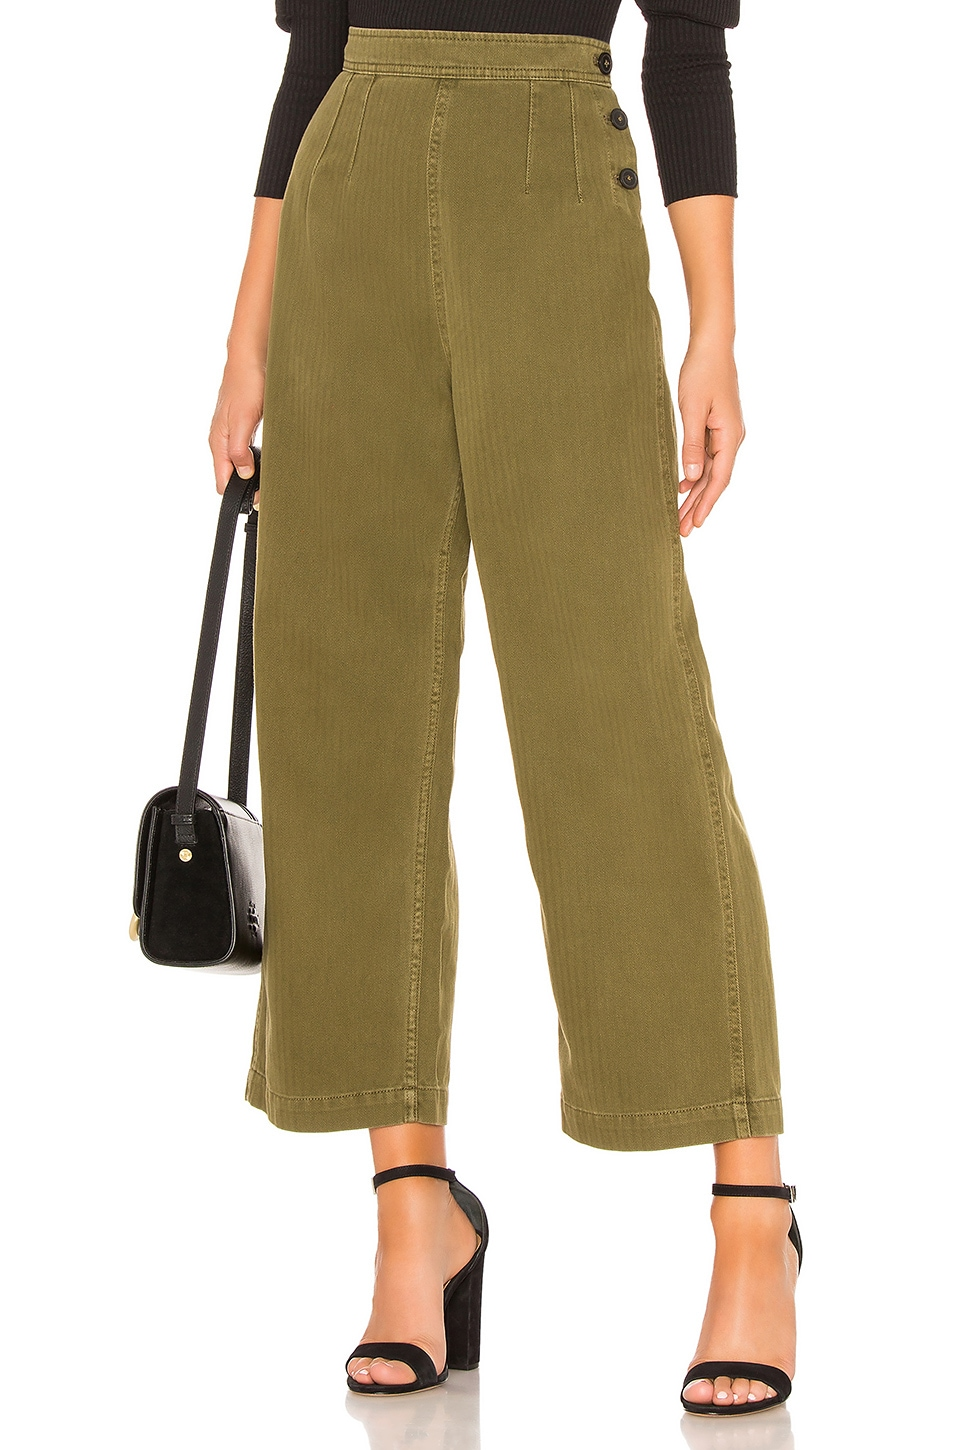 Free People Clean Mod Utility Crop Pant in Moss